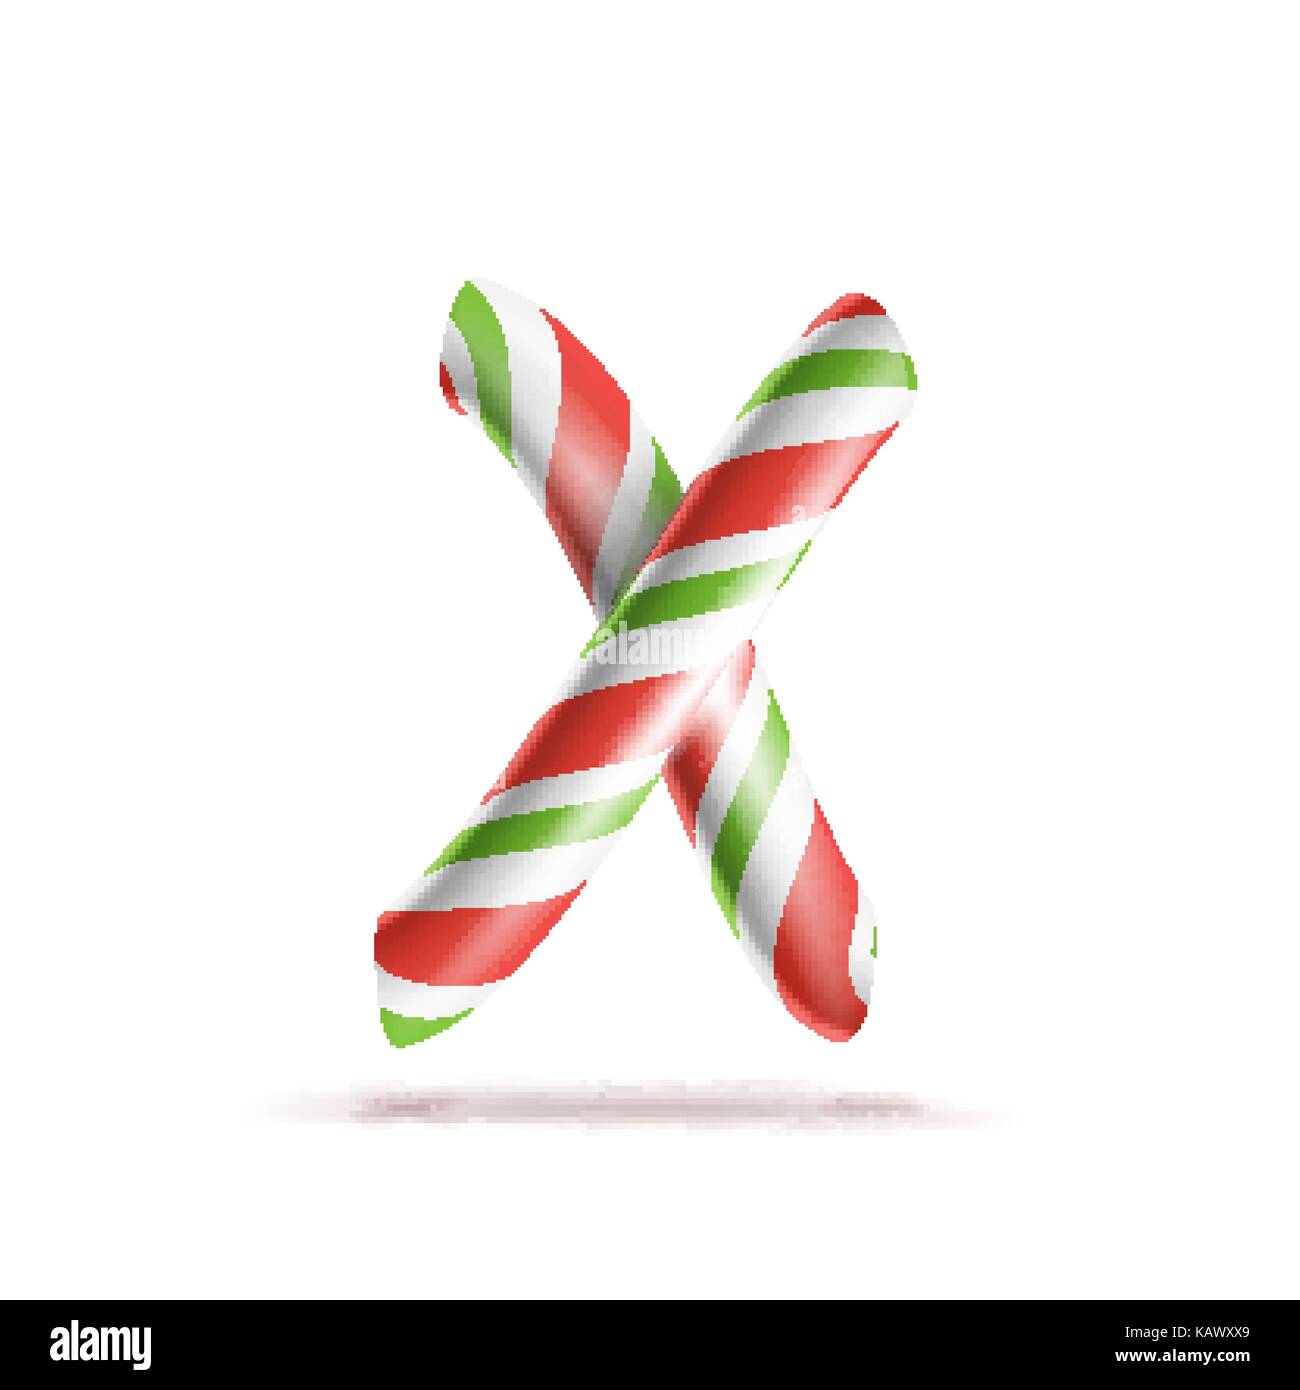 Christmas Alphabet Letter X Stock Photo - Image of colorful ...